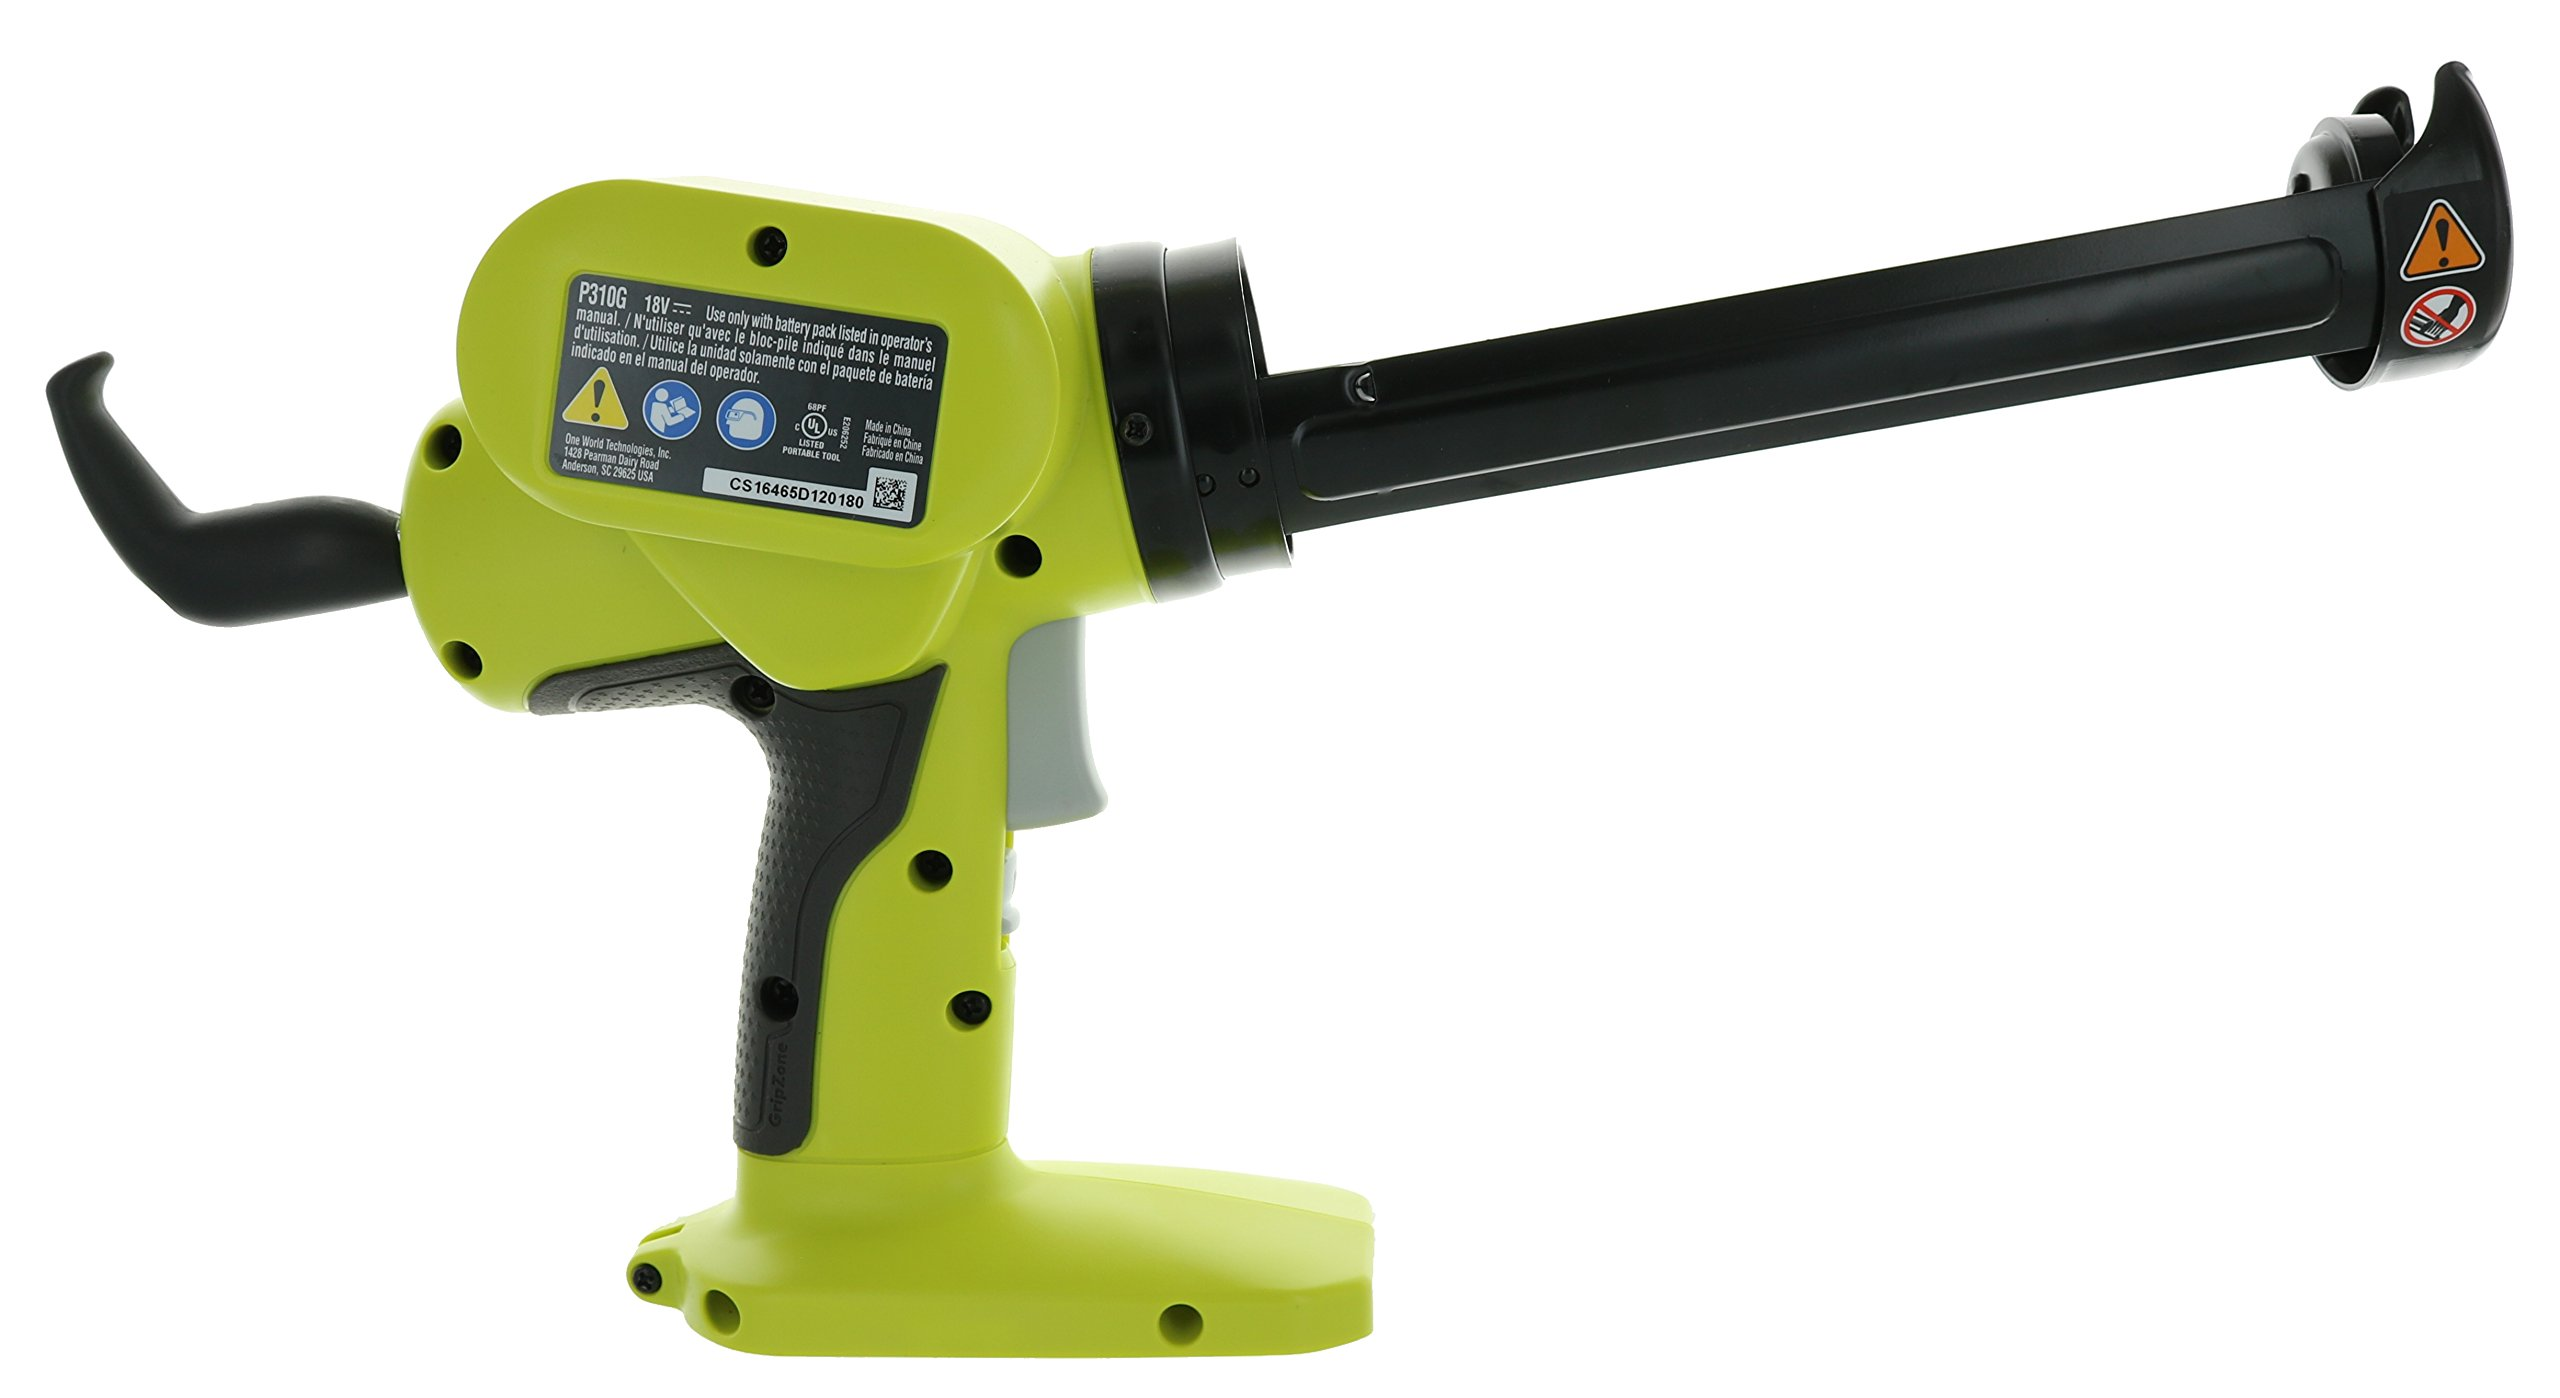 Ryobi P310G 18v Pistol Grip Variable Discharge Rate Power Caulk and Adhesive Gun (Tool Only, Holds 10 Ounce Carriage) by Ryobi (Image #2)